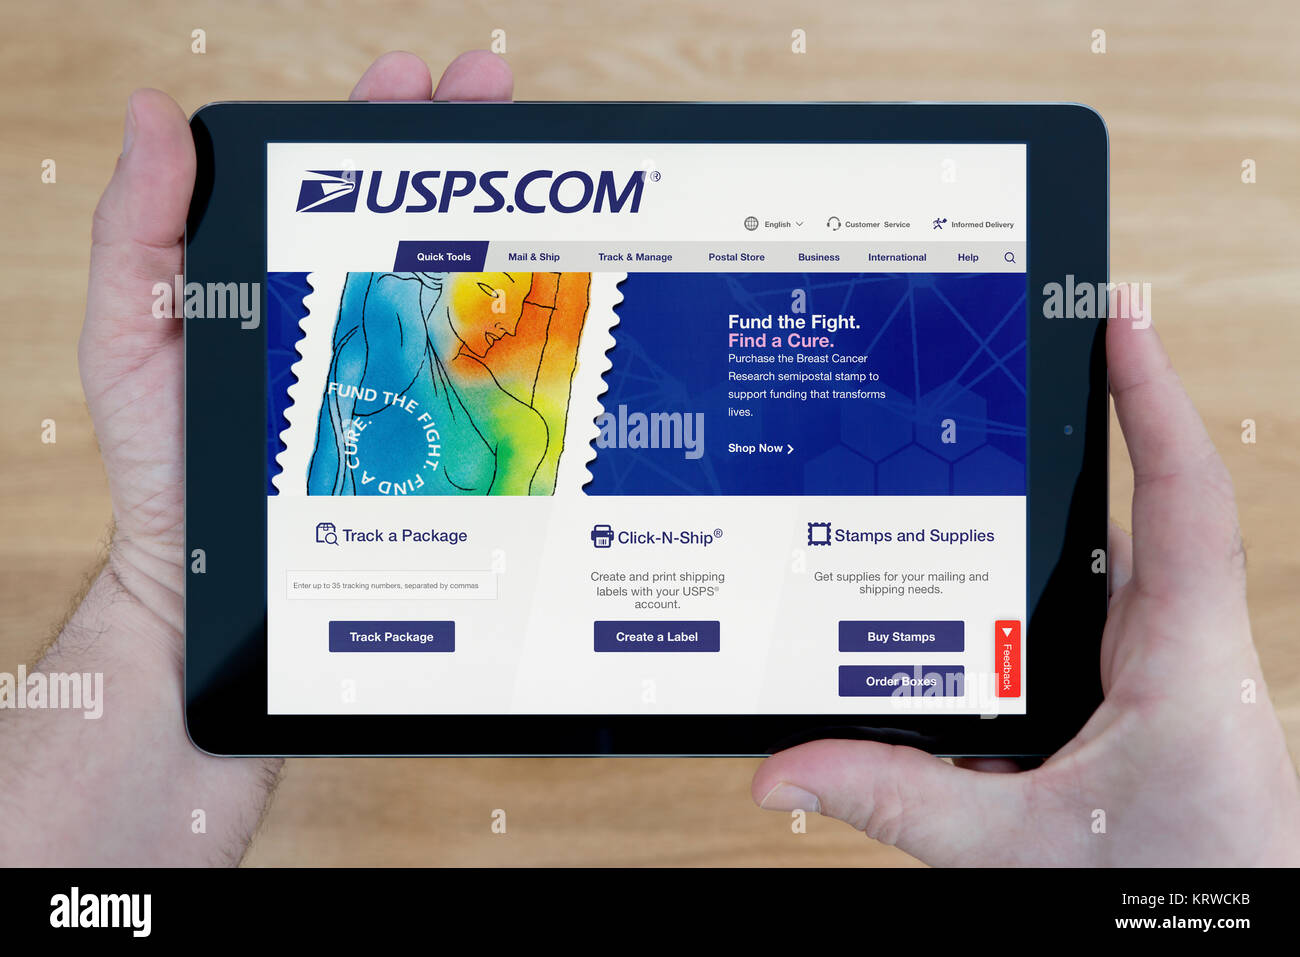 A man looks at the United States Postal Service website (USPS.com) on an iPad tablet, shot against a wooden table - Stock Image